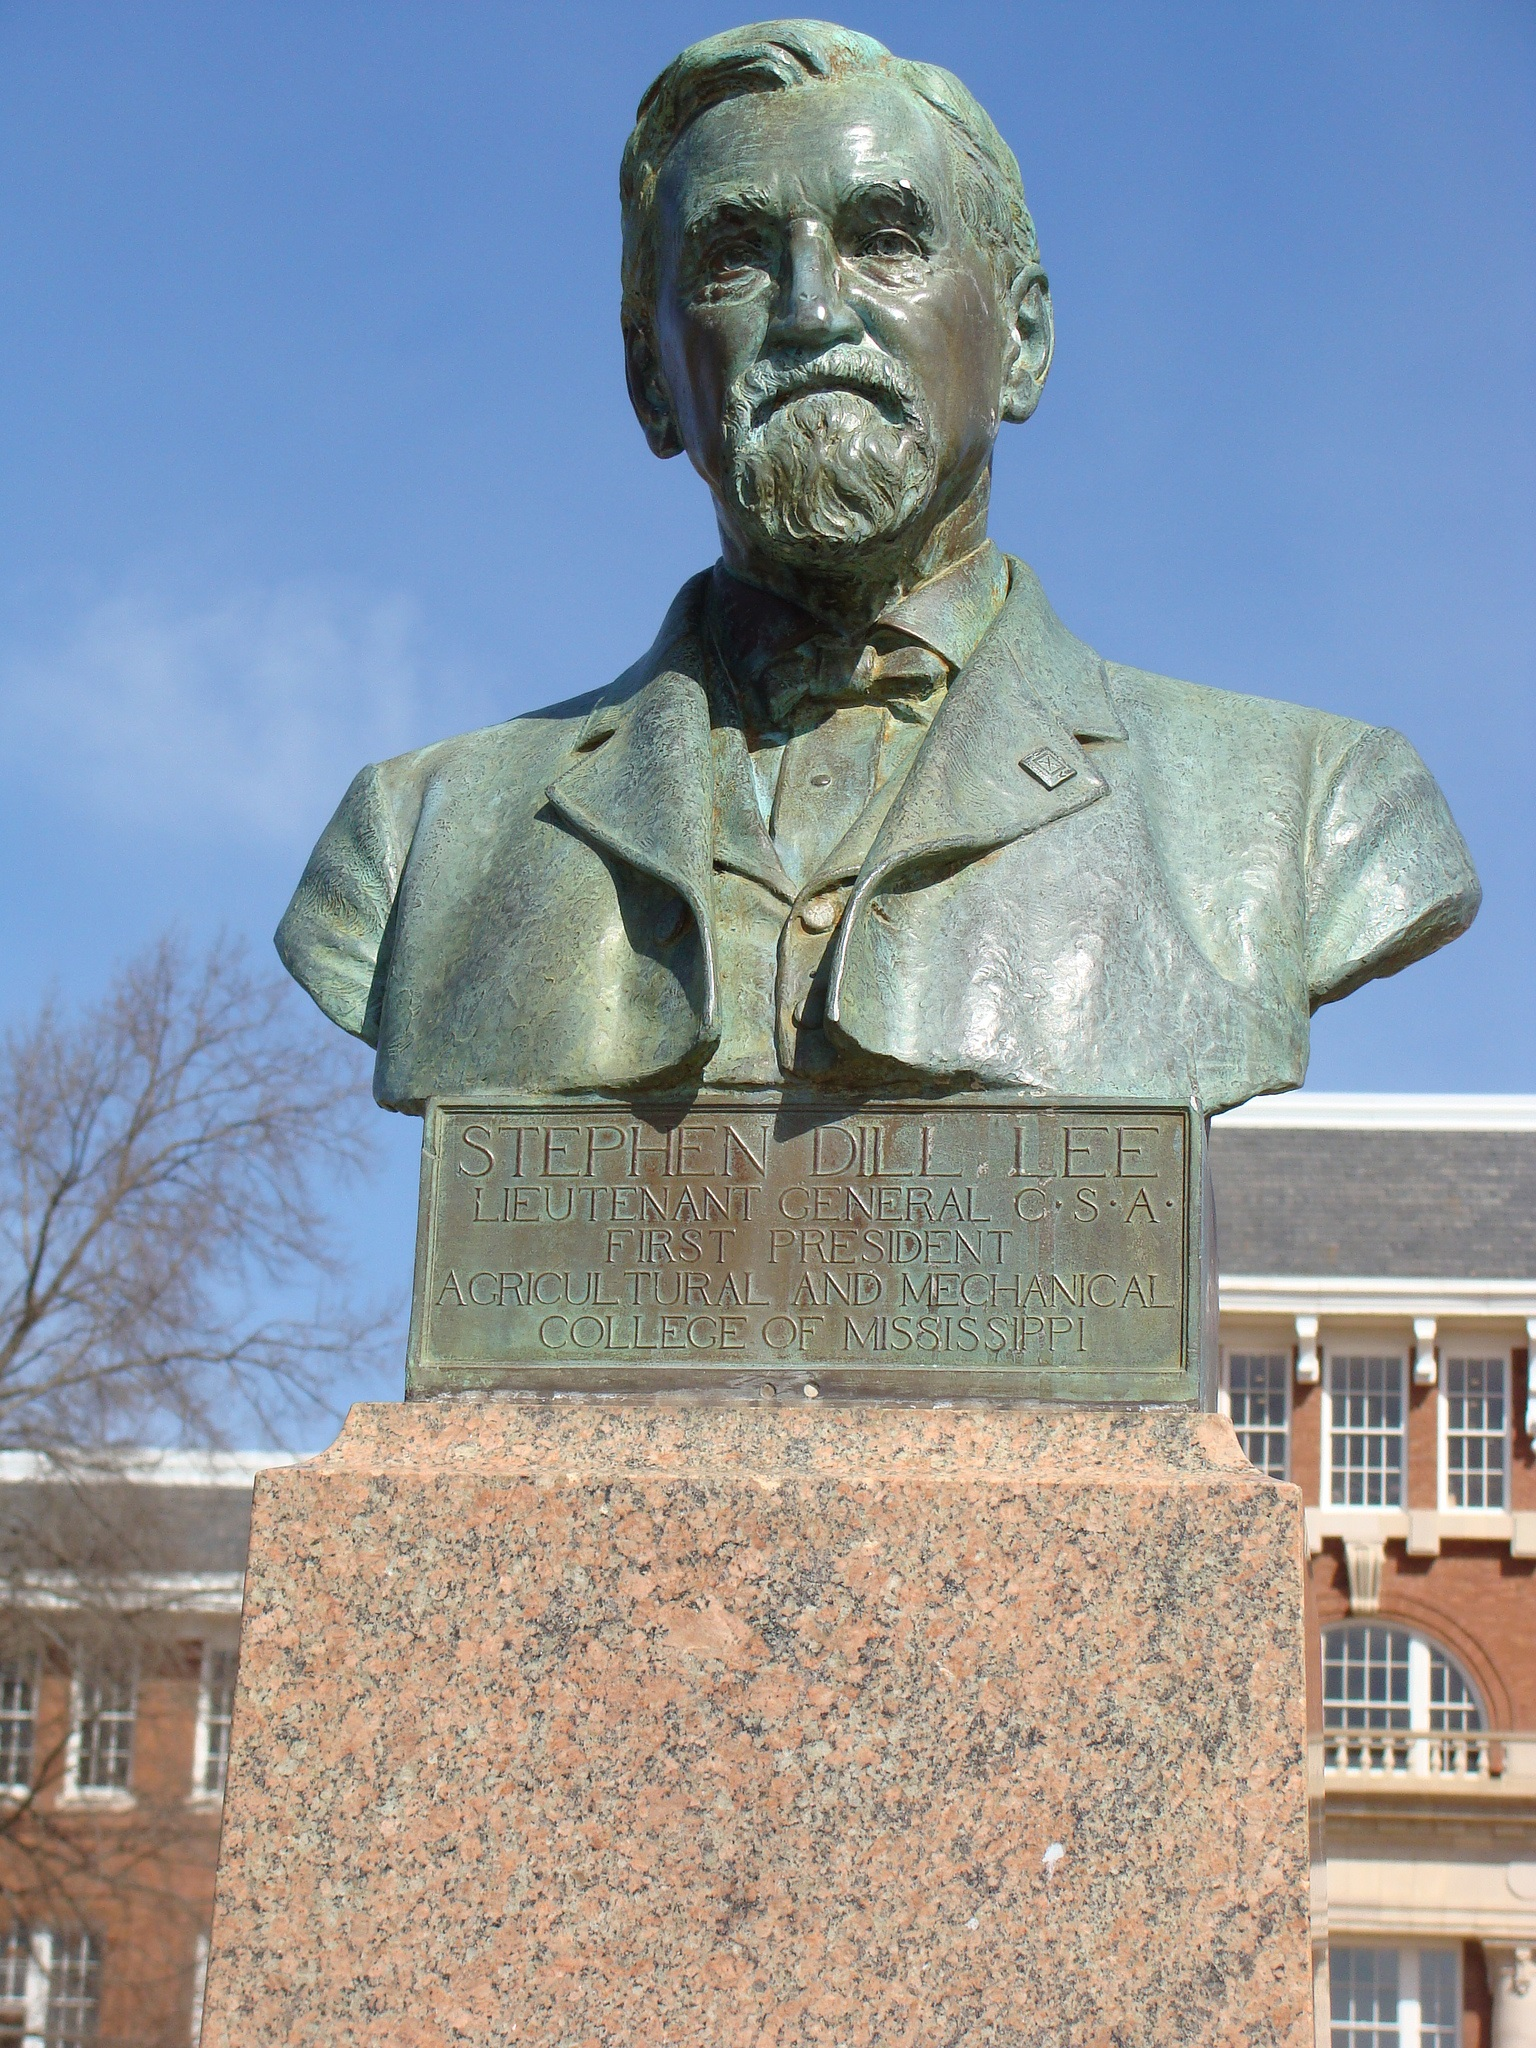 This bust of Stephen Lee was made by 19th century sculptor Theo Alice Ruggles Kitson